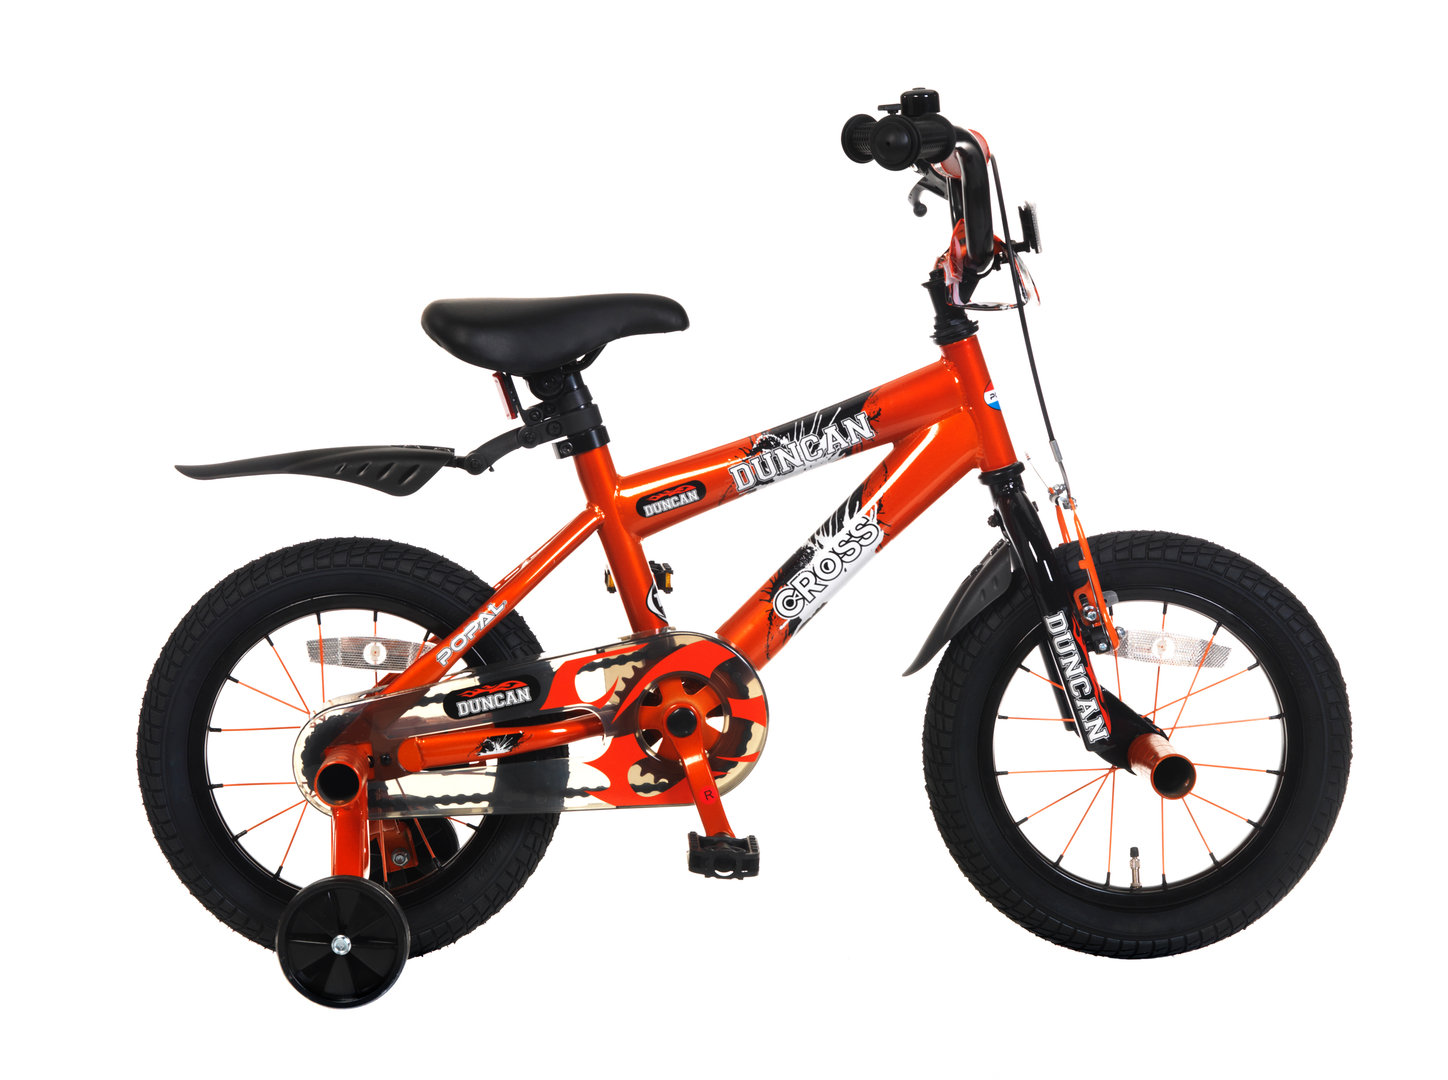 12 zoll kinderfahrrad bmx duncan orange fahrrad. Black Bedroom Furniture Sets. Home Design Ideas